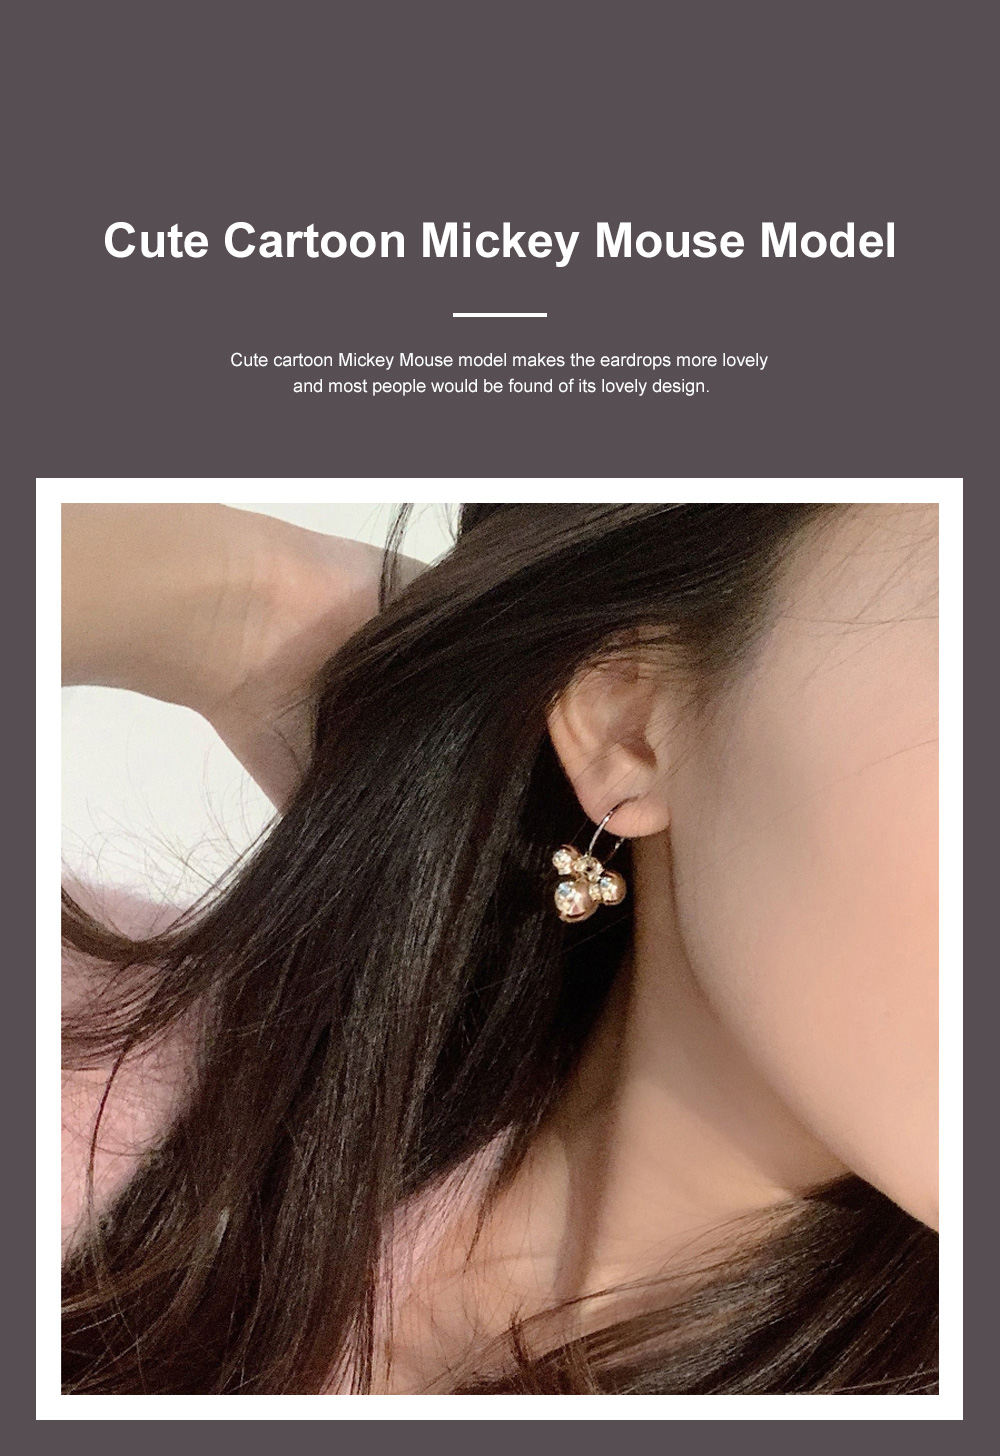 CAROMAY Minimalist Stylish Fashionable Cartoon Cute Mouse Model Silver Earrings Eardrops with Electroplating Coating 2